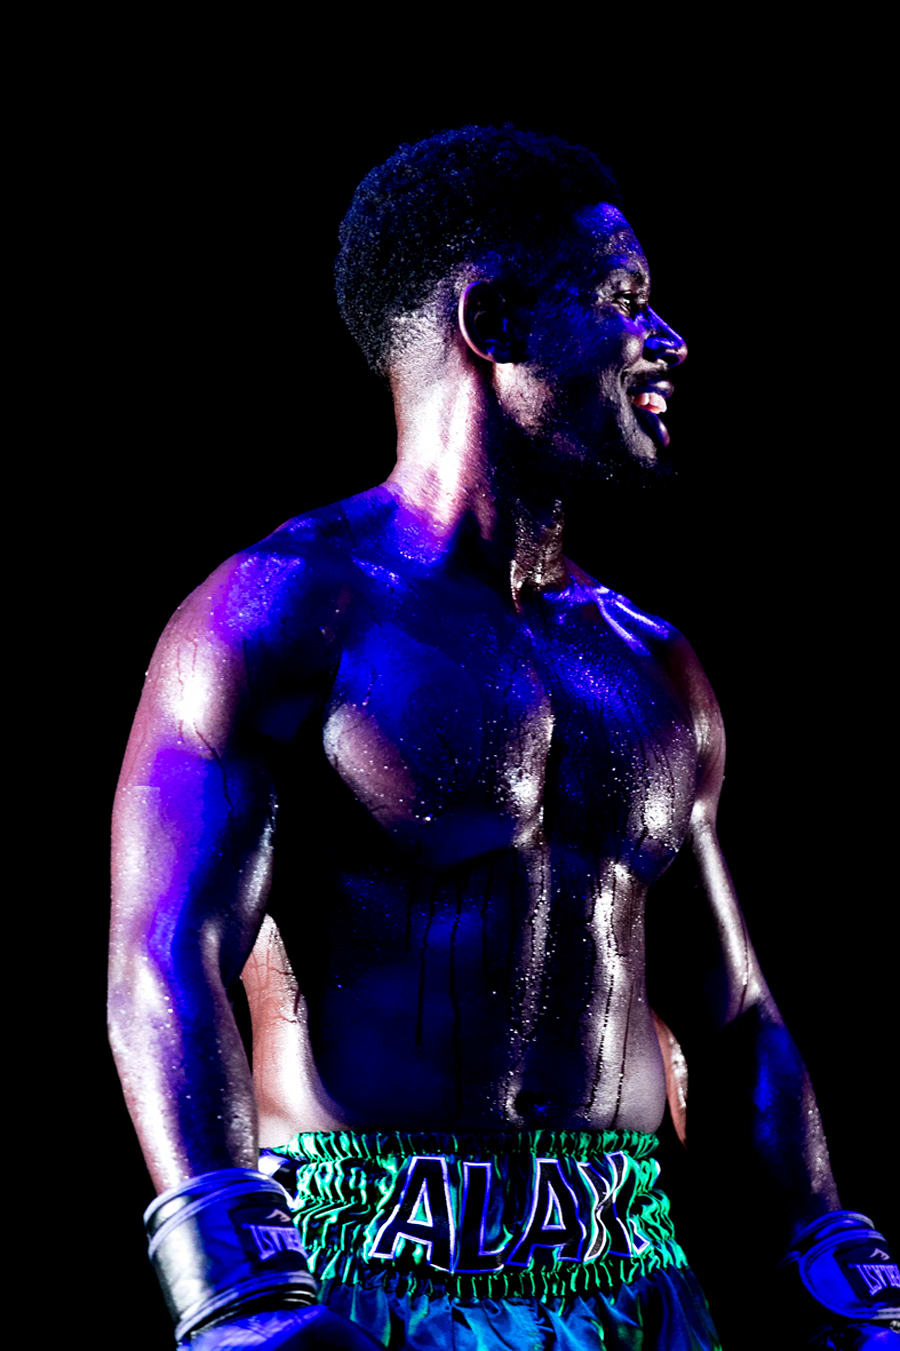 Prize Fighter follows the story of Australian-Congolese boxer Isa in a fight that resembles that of